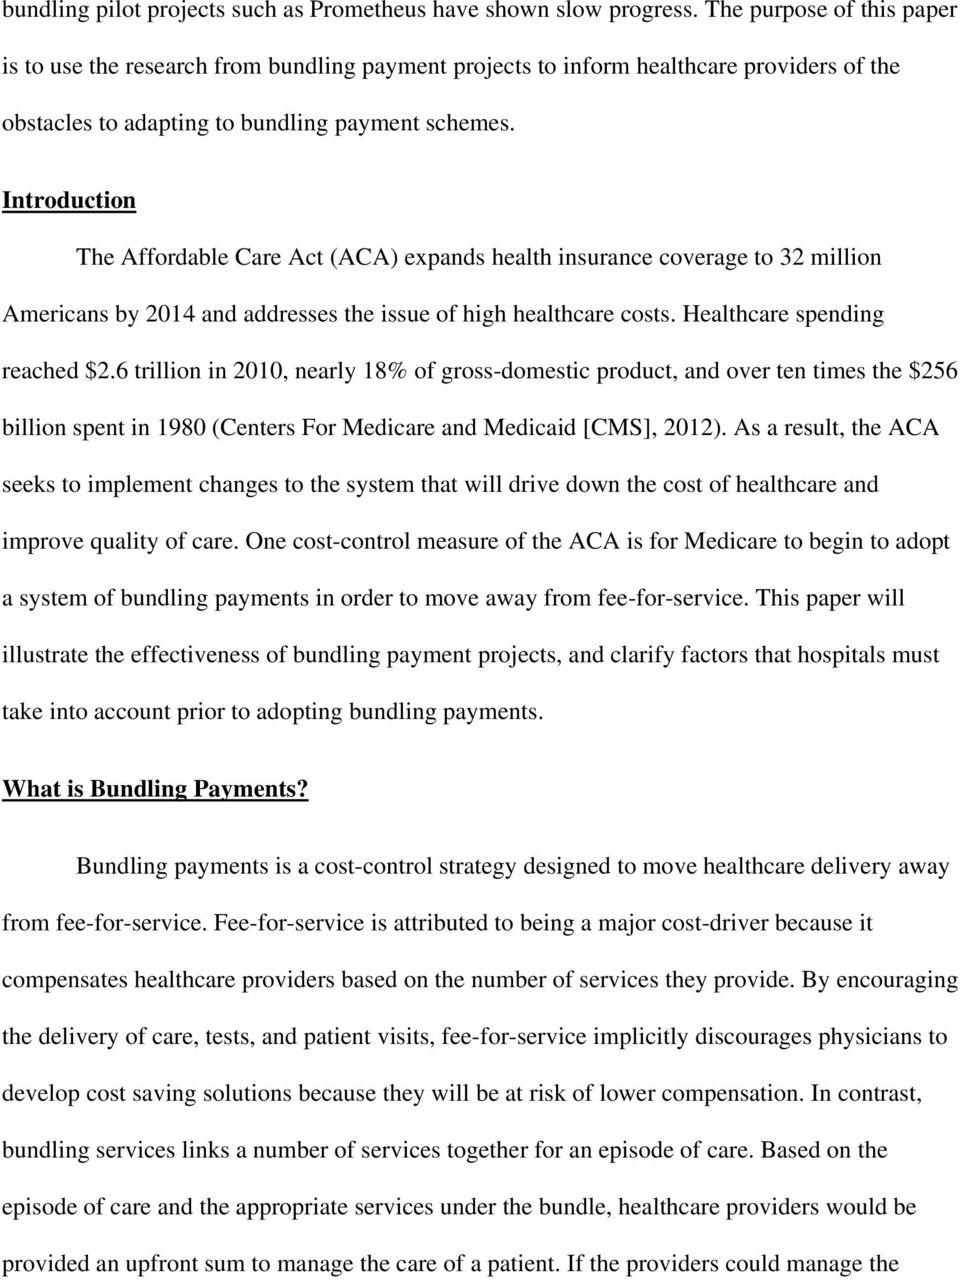 Introduction The Affordable Care Act (ACA) expands health insurance coverage to 32 million Americans by 2014 and addresses the issue of high healthcare costs. Healthcare spending reached $2.